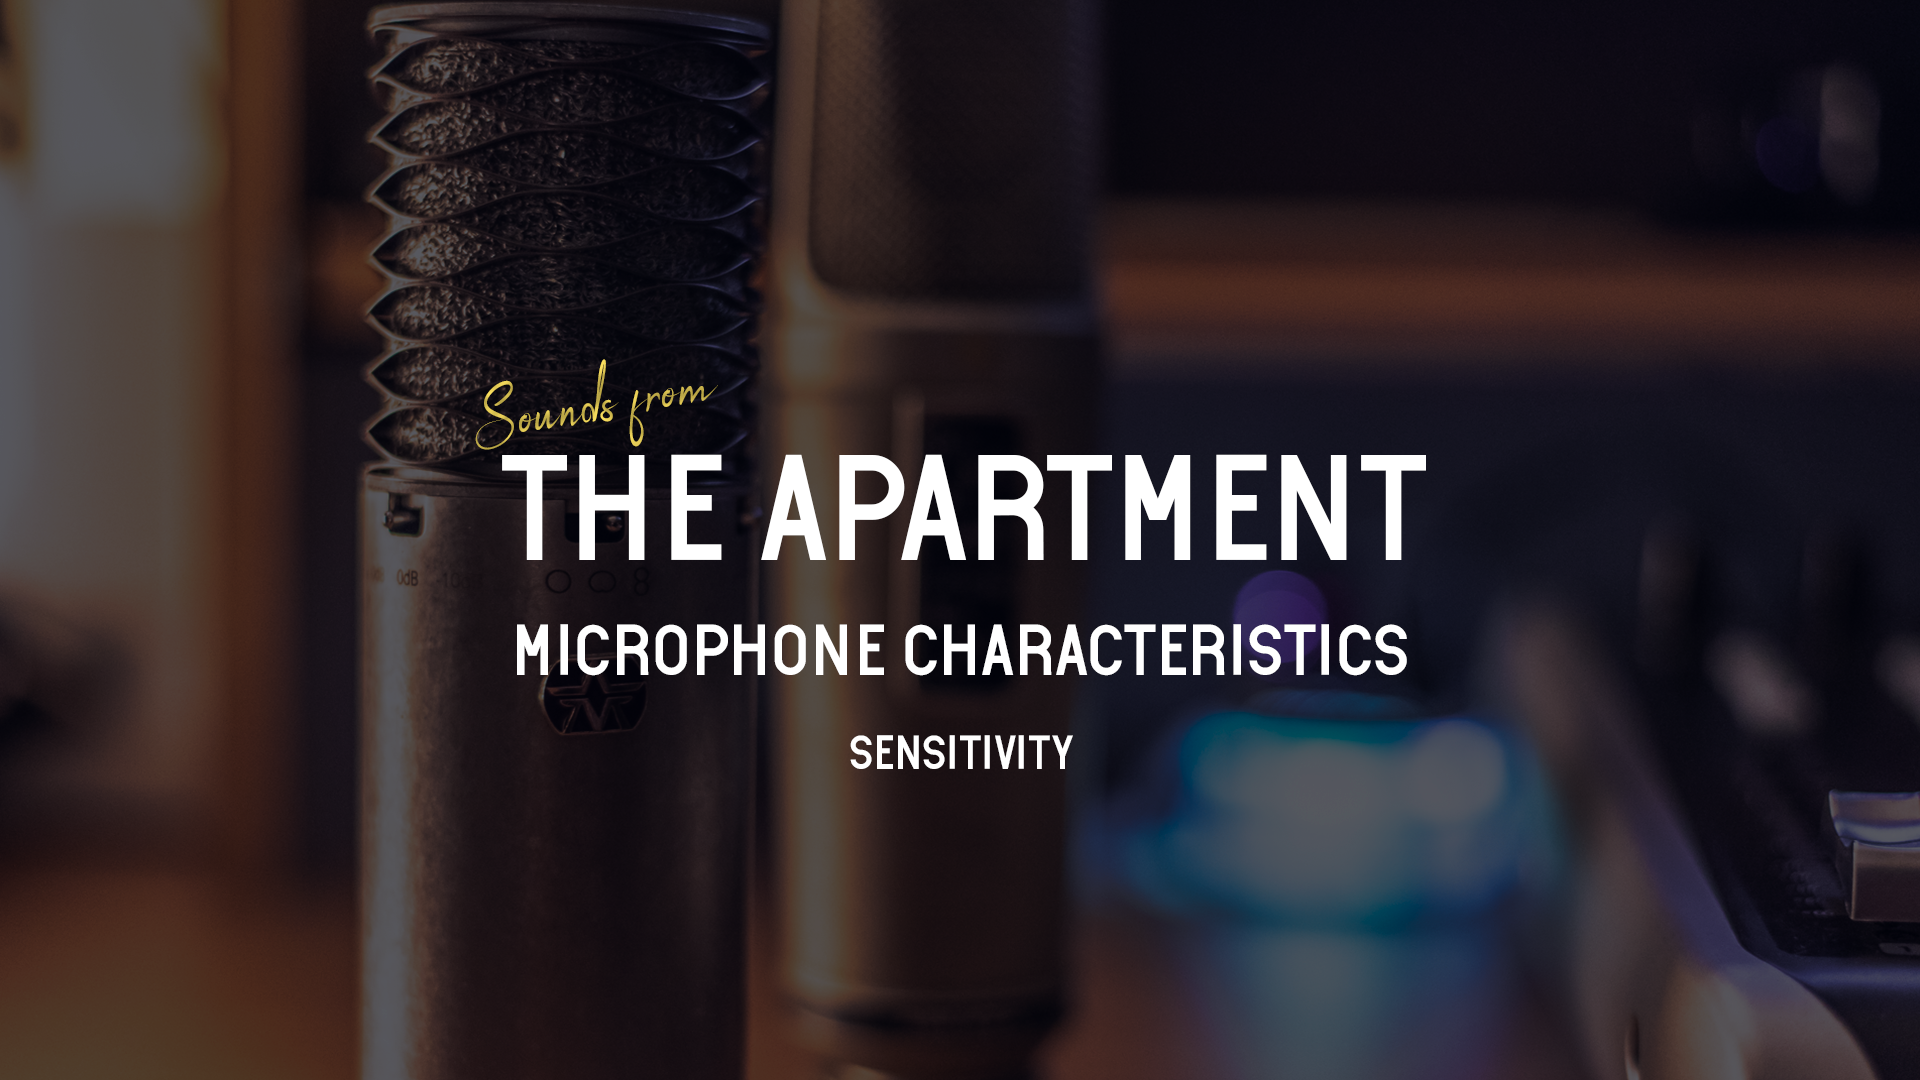 Sounds from the apartment article sensitivity